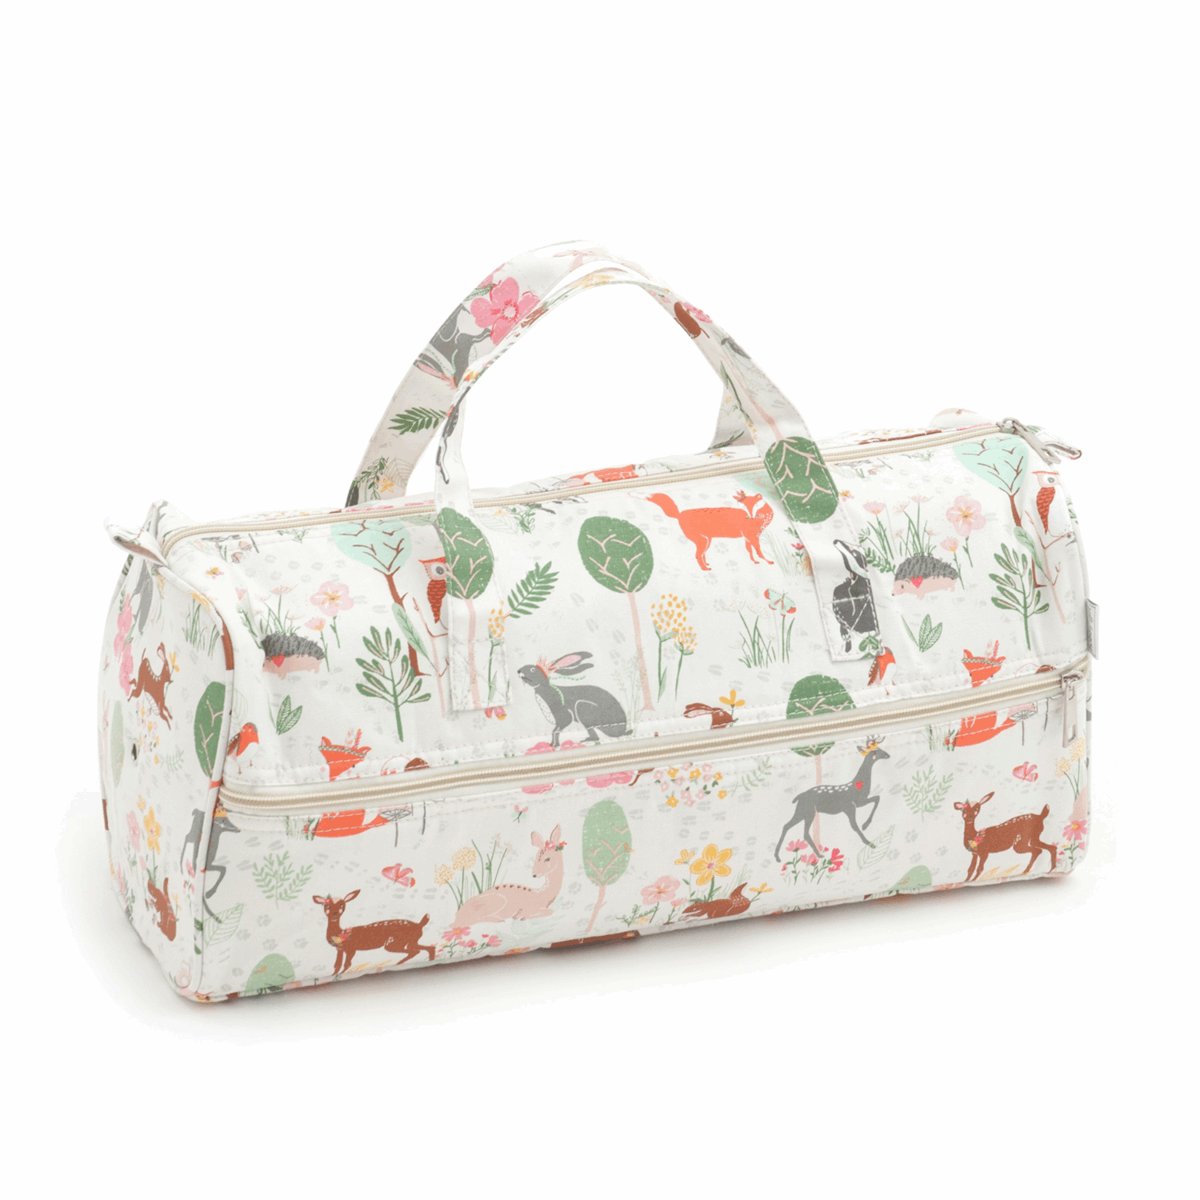 Picture of Knitting Bag: Woodland: Pack of 3